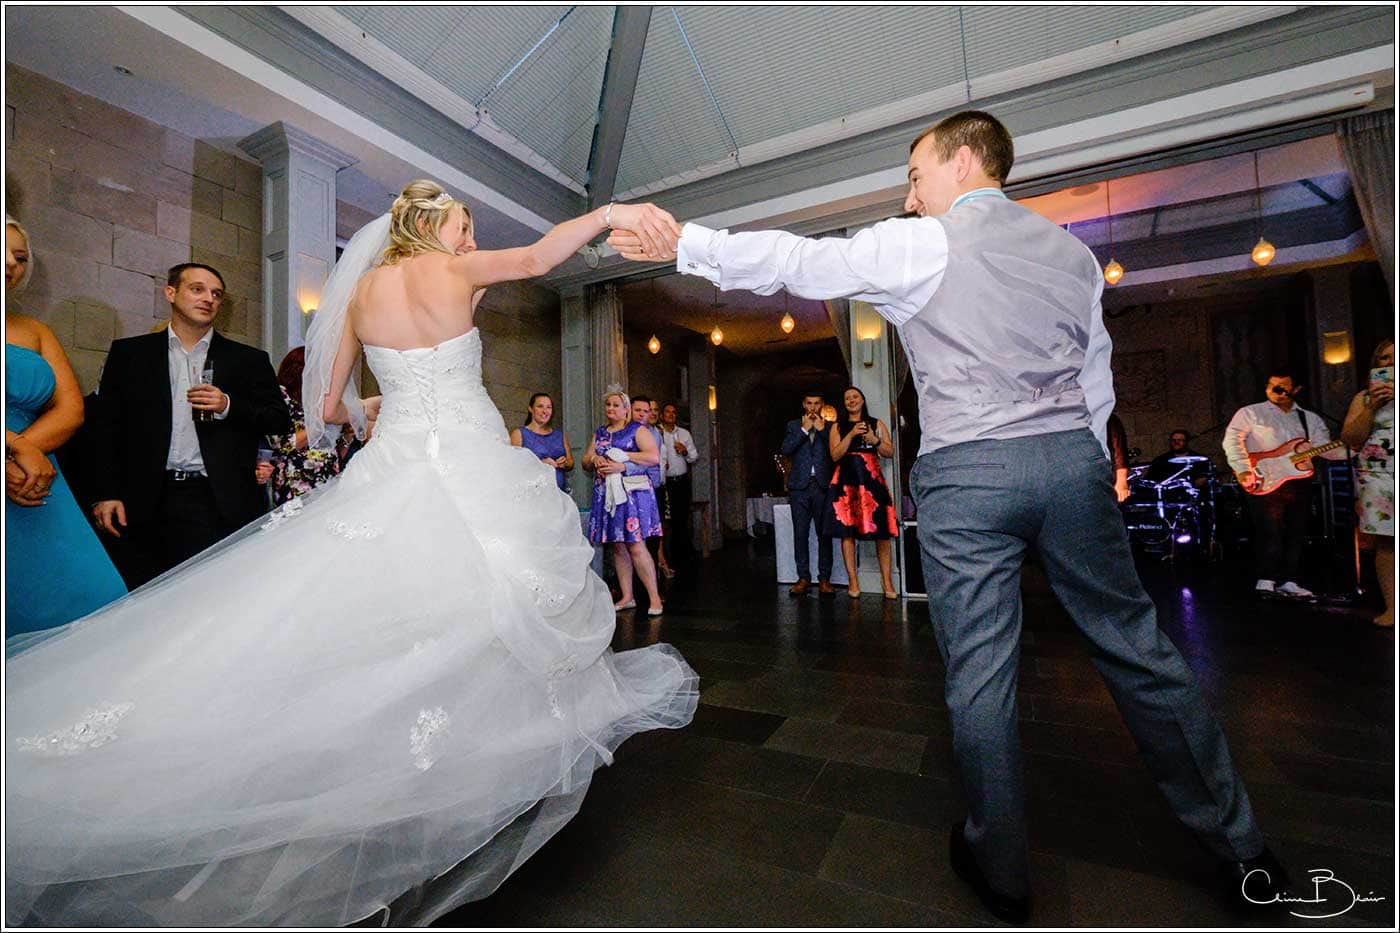 Bride and groom first dance-by Hampton manor wedding photographer Clive Blair Photography